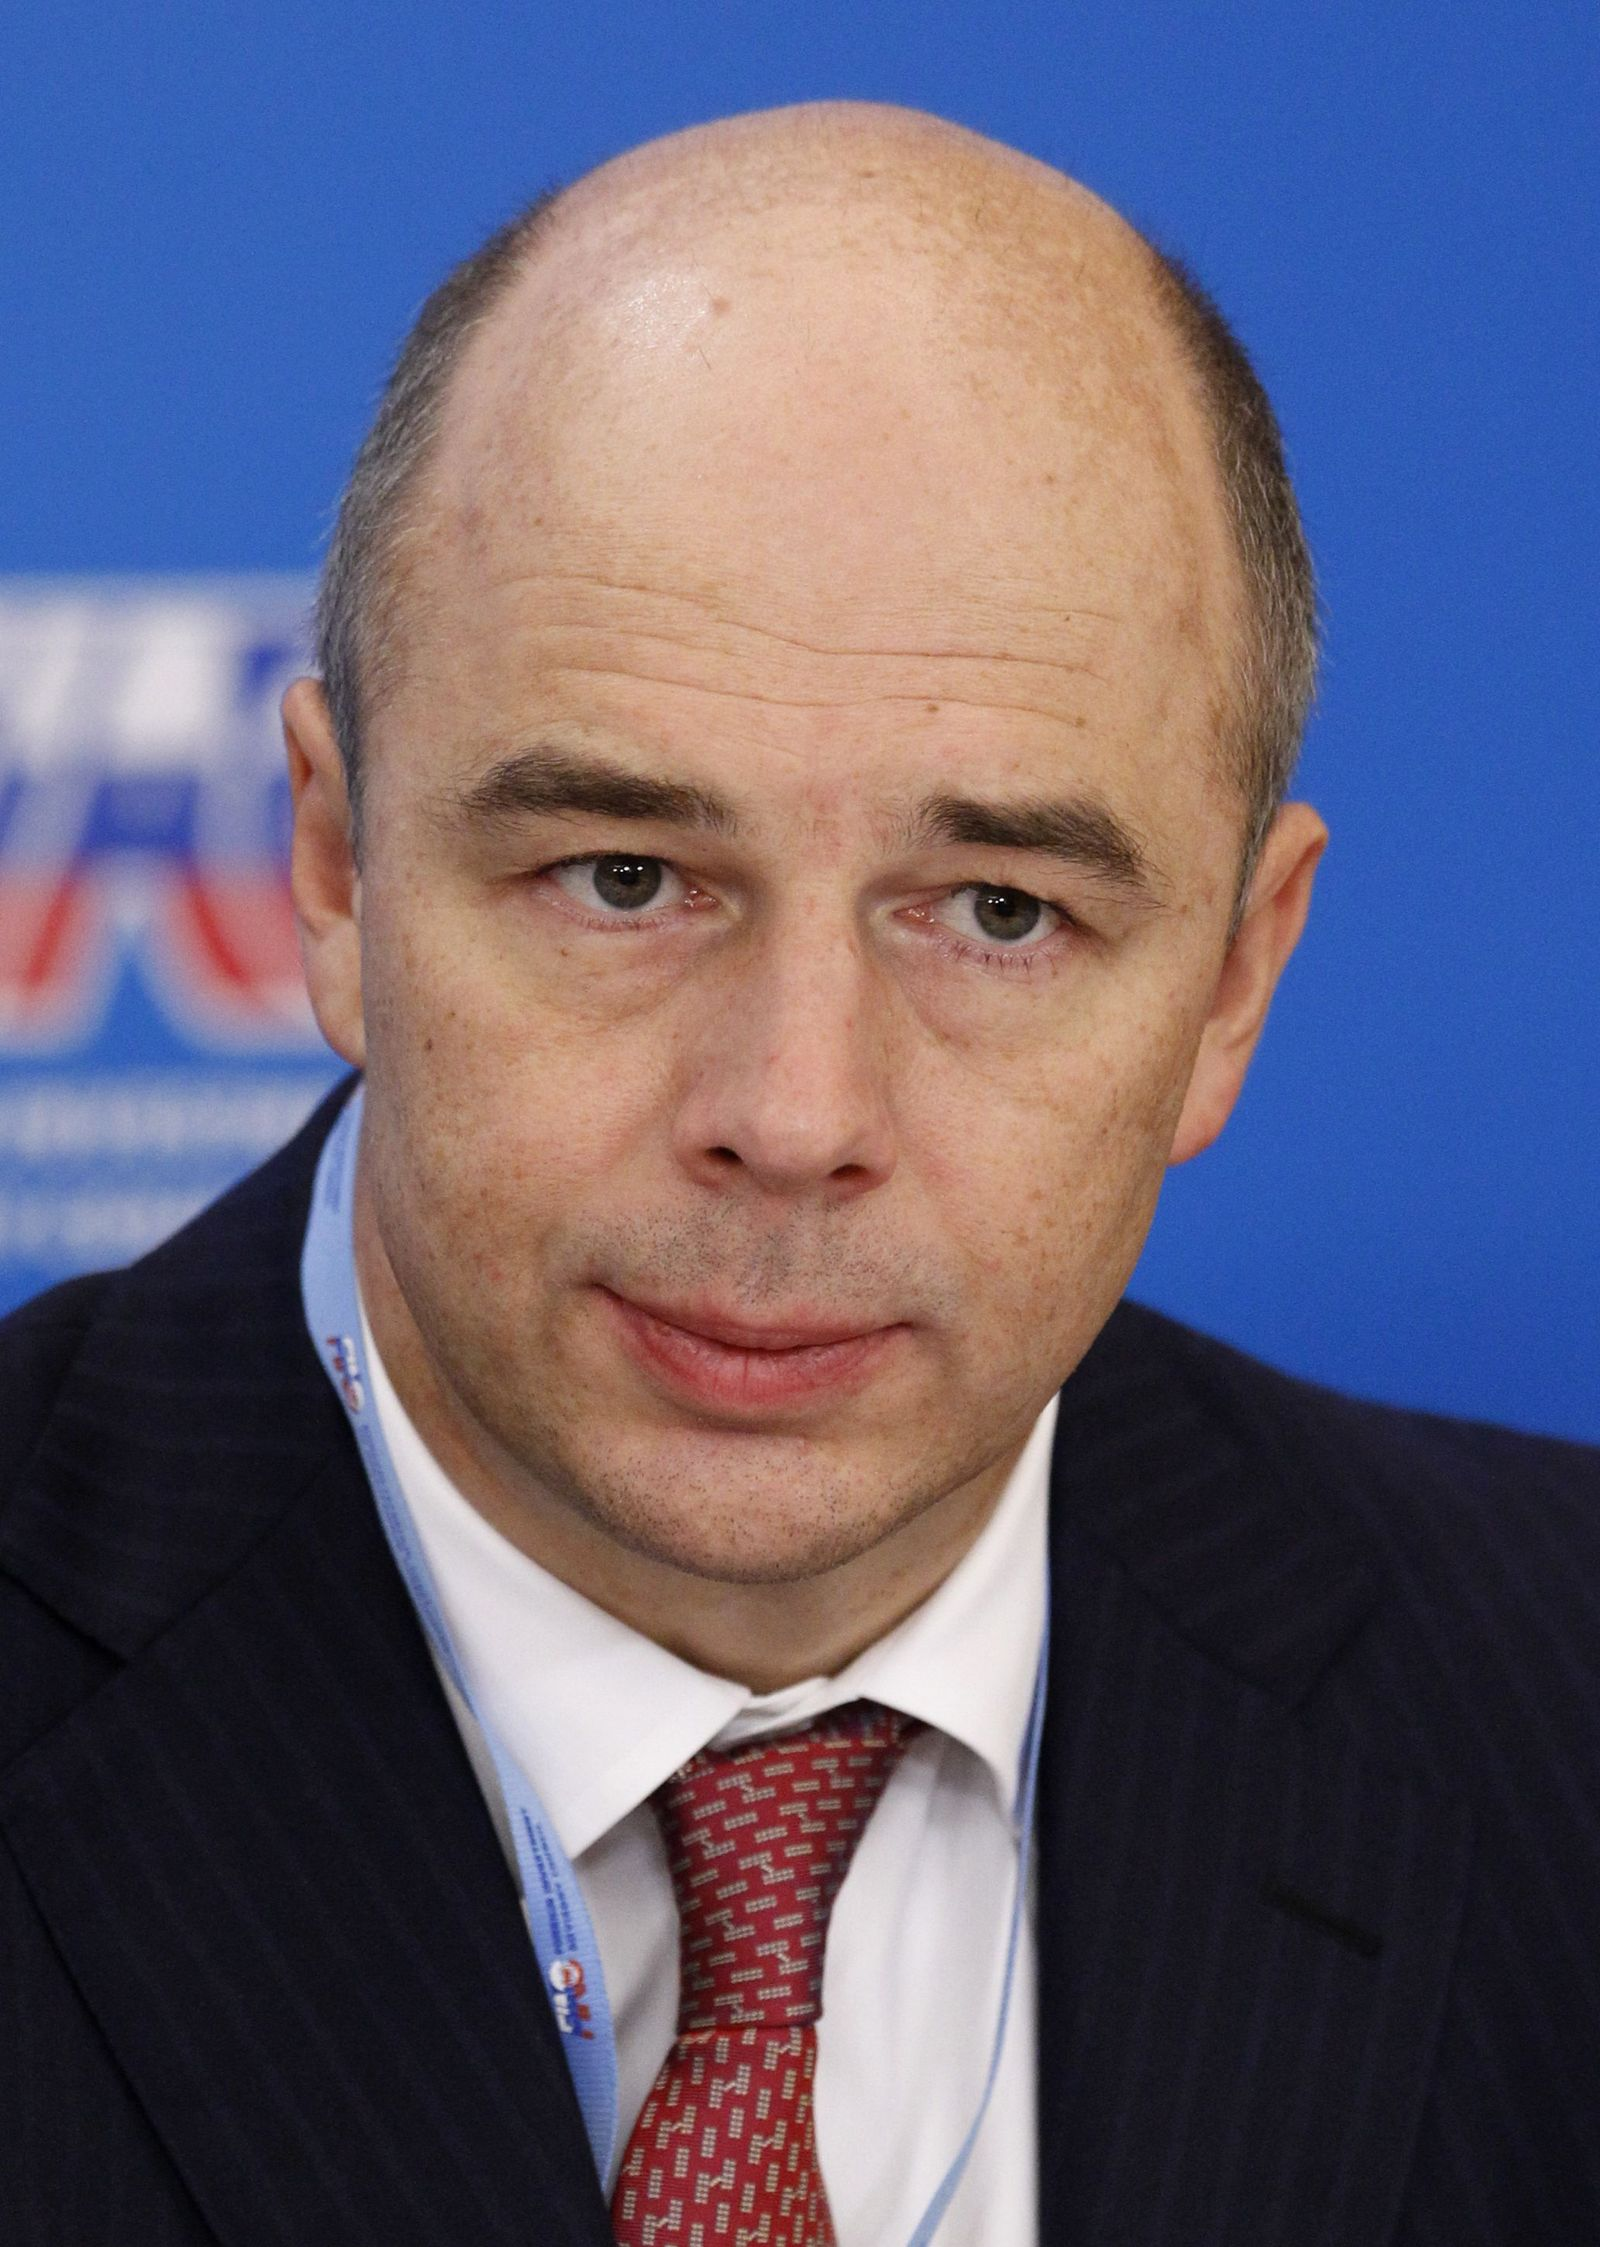 Anton Siluanov / Finanzminister Russland / National Welfare Fund